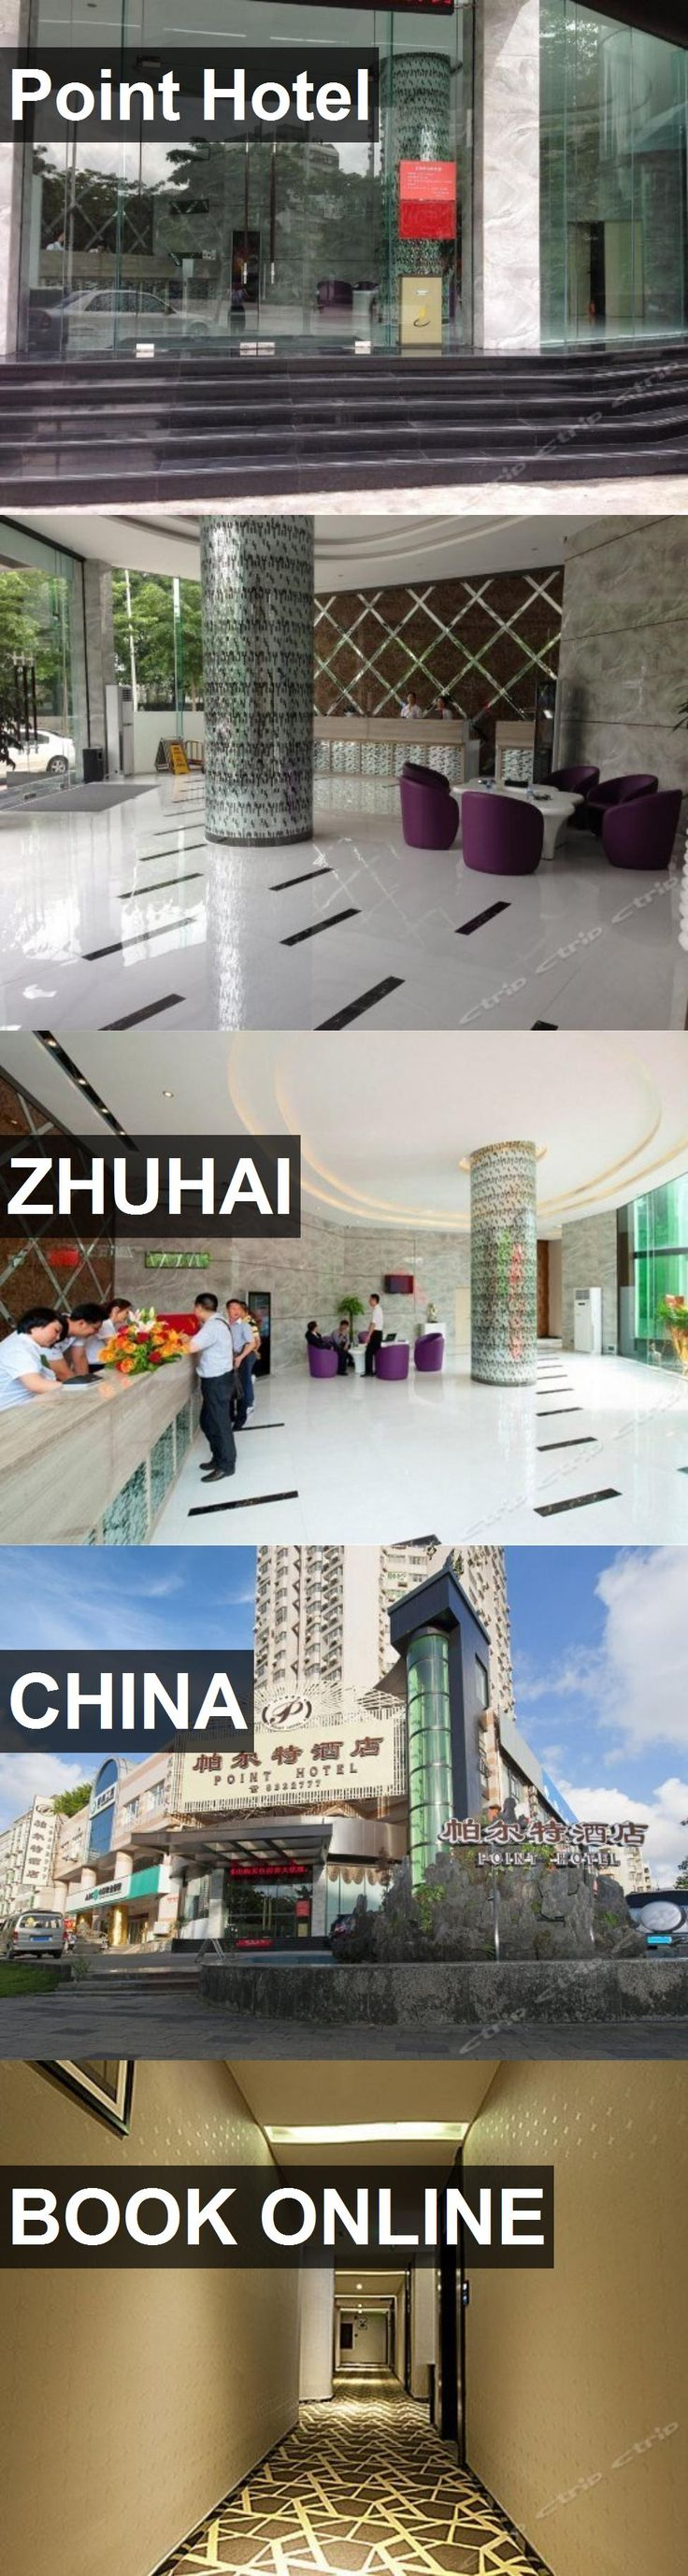 Hotel Point Hotel in Zhuhai, China. For more information, photos, reviews and best prices please follow the link. #China #Zhuhai #PointHotel #hotel #travel #vacation